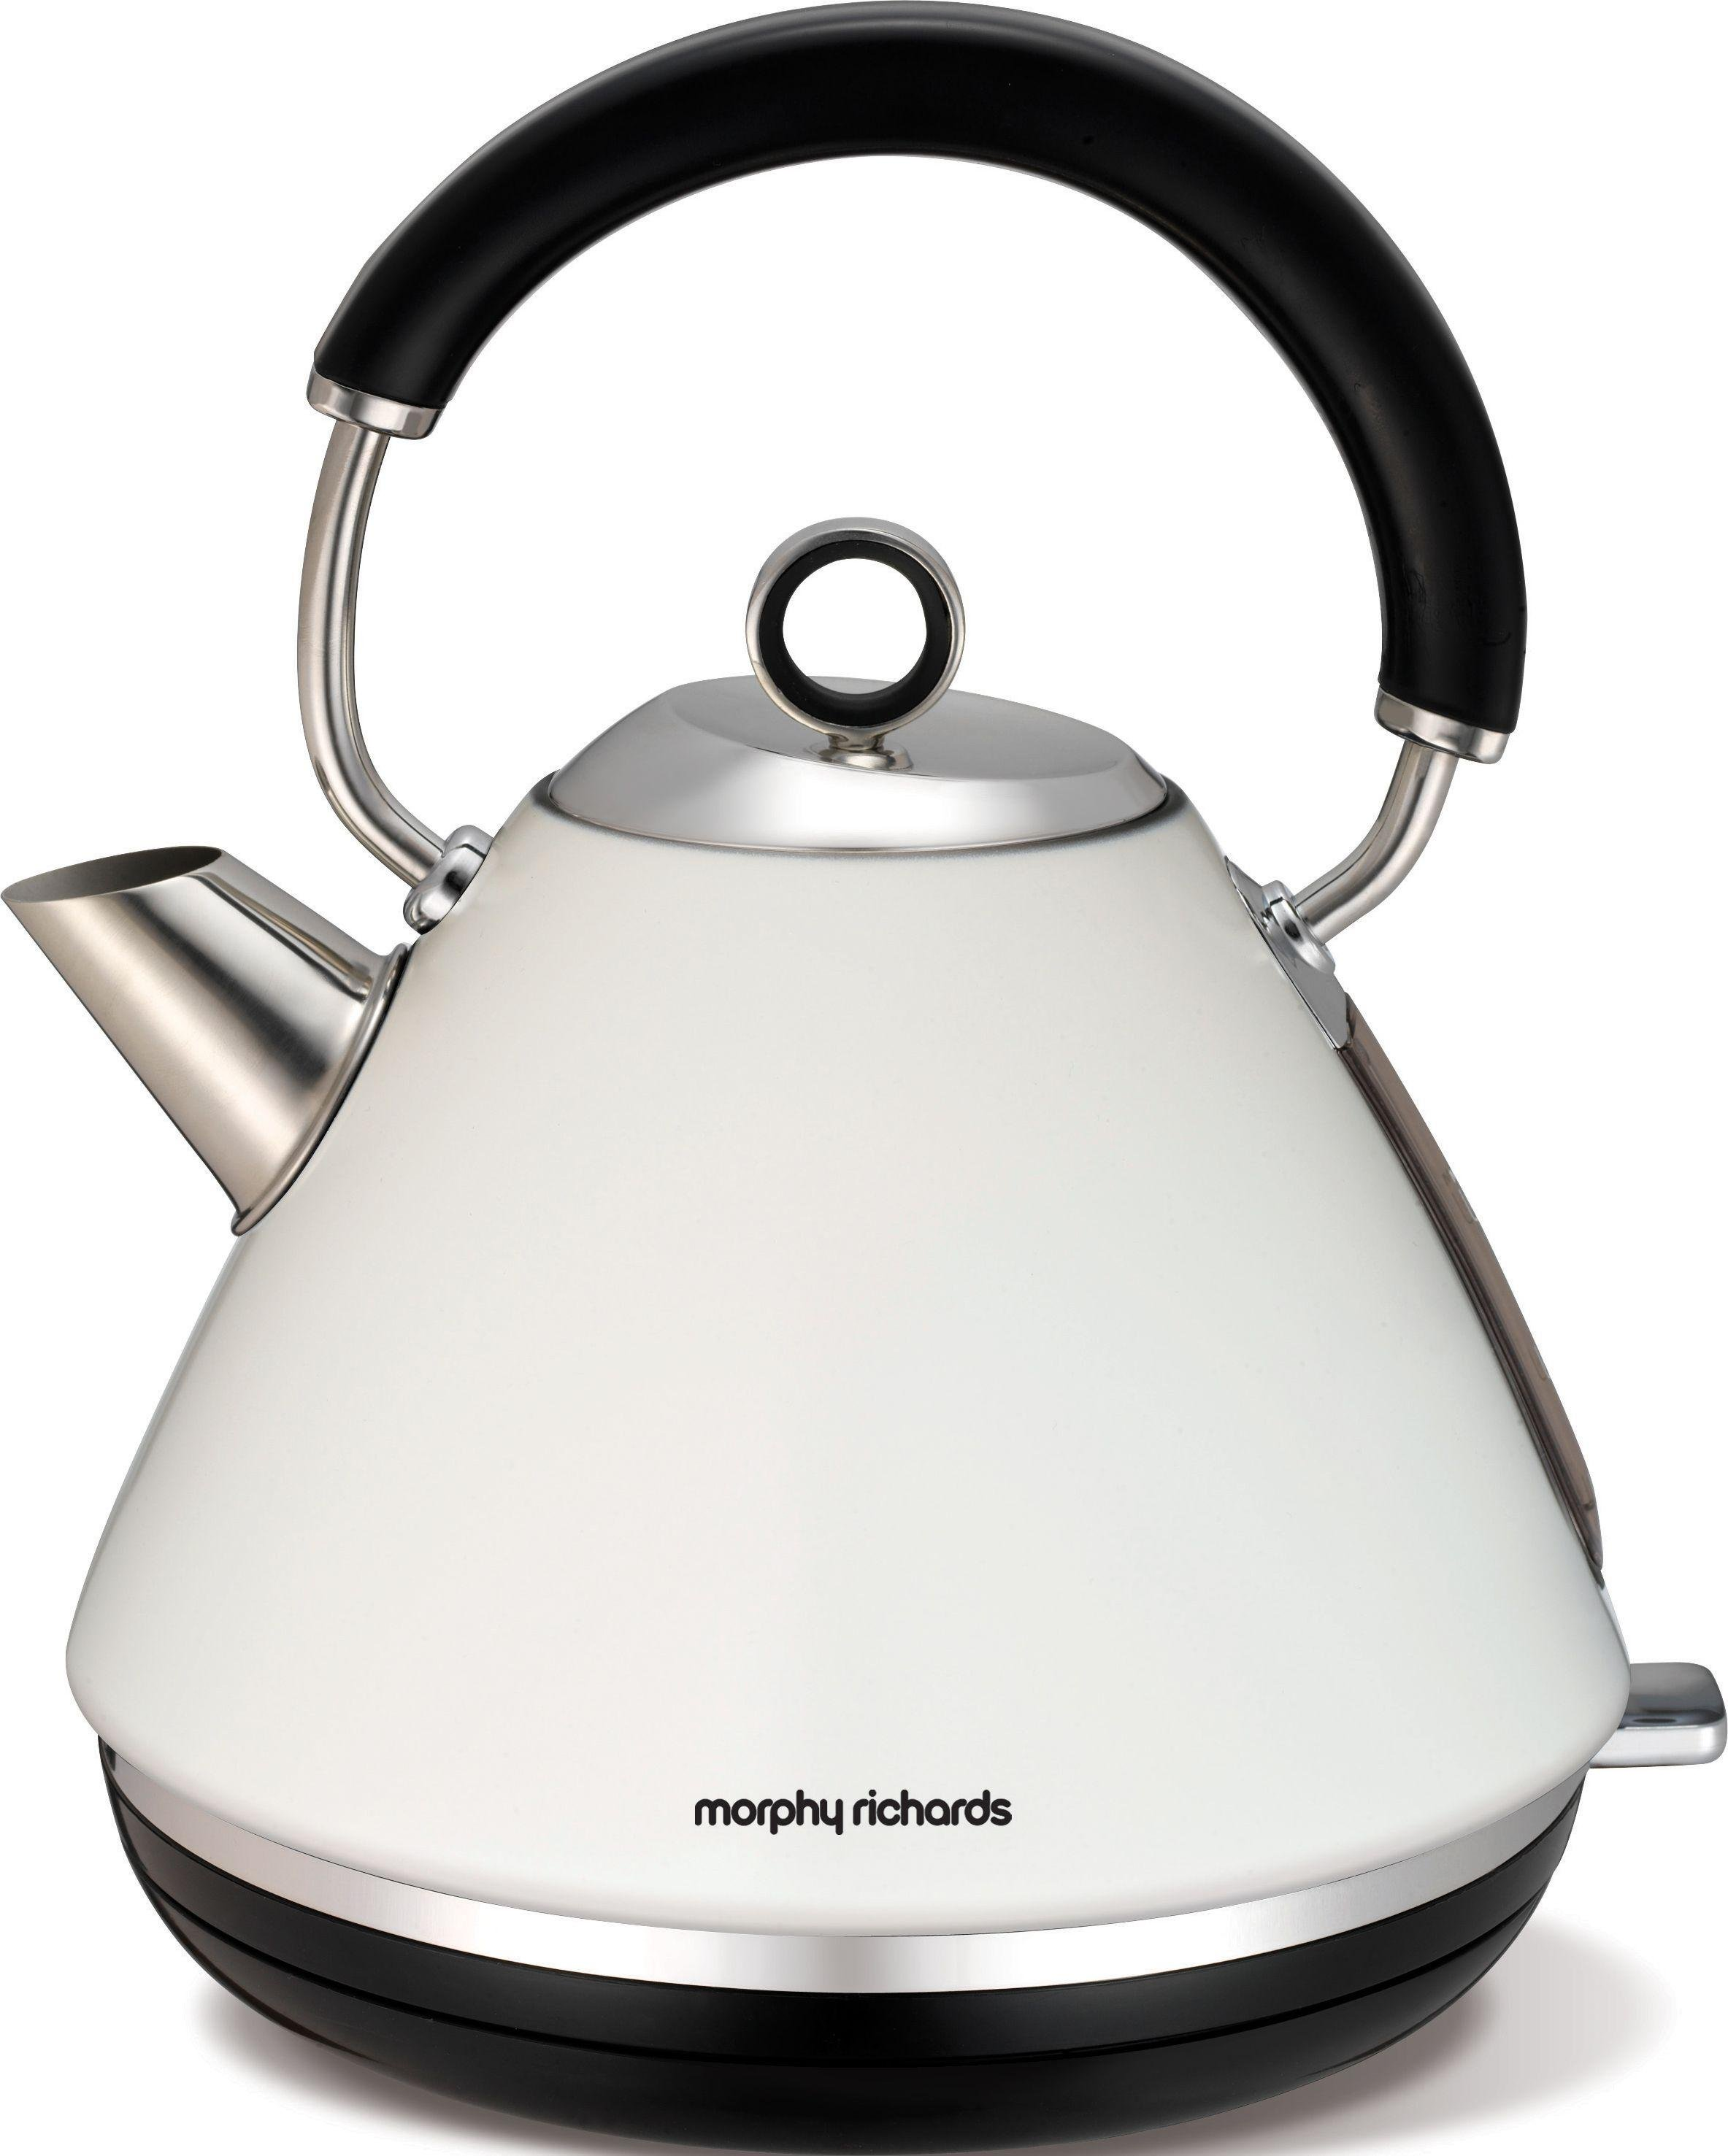 compare morphy richards 43775 accents cream pyramid kettle. Black Bedroom Furniture Sets. Home Design Ideas